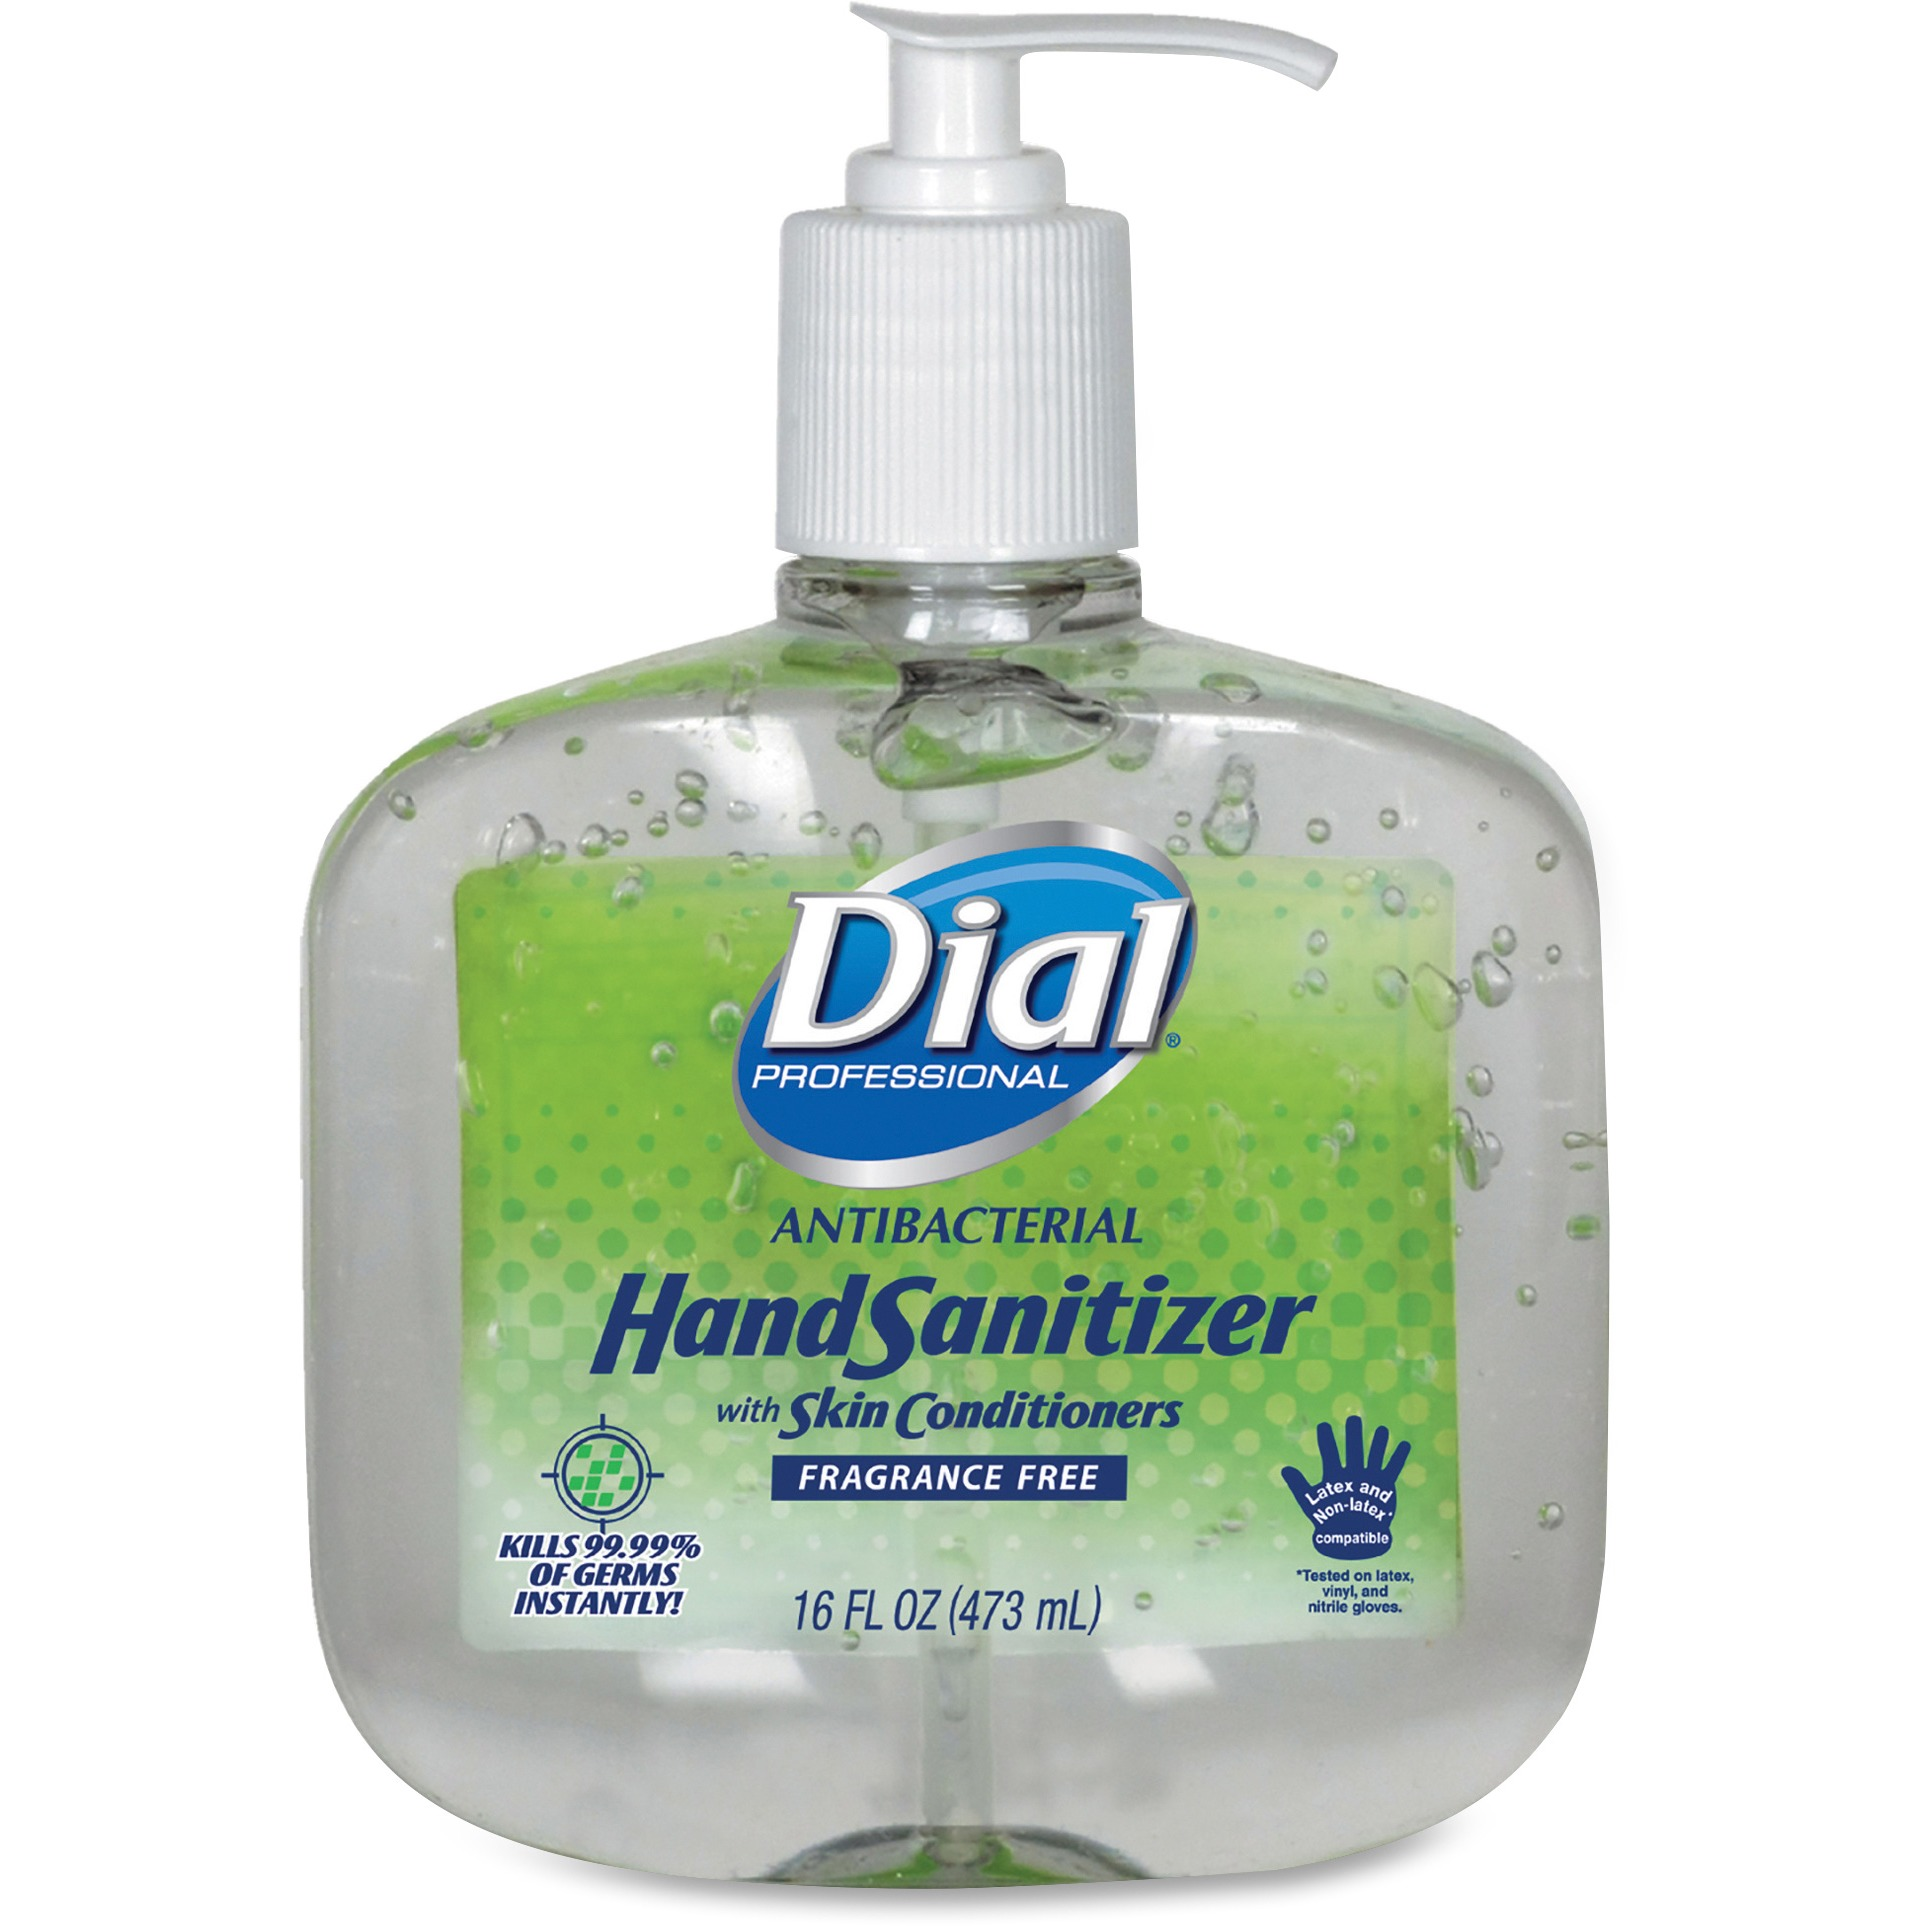 Dial Professional Antibacterial Hand Sanitizer, Clear, 8   Carton (Quantity) by The Dial Corporation